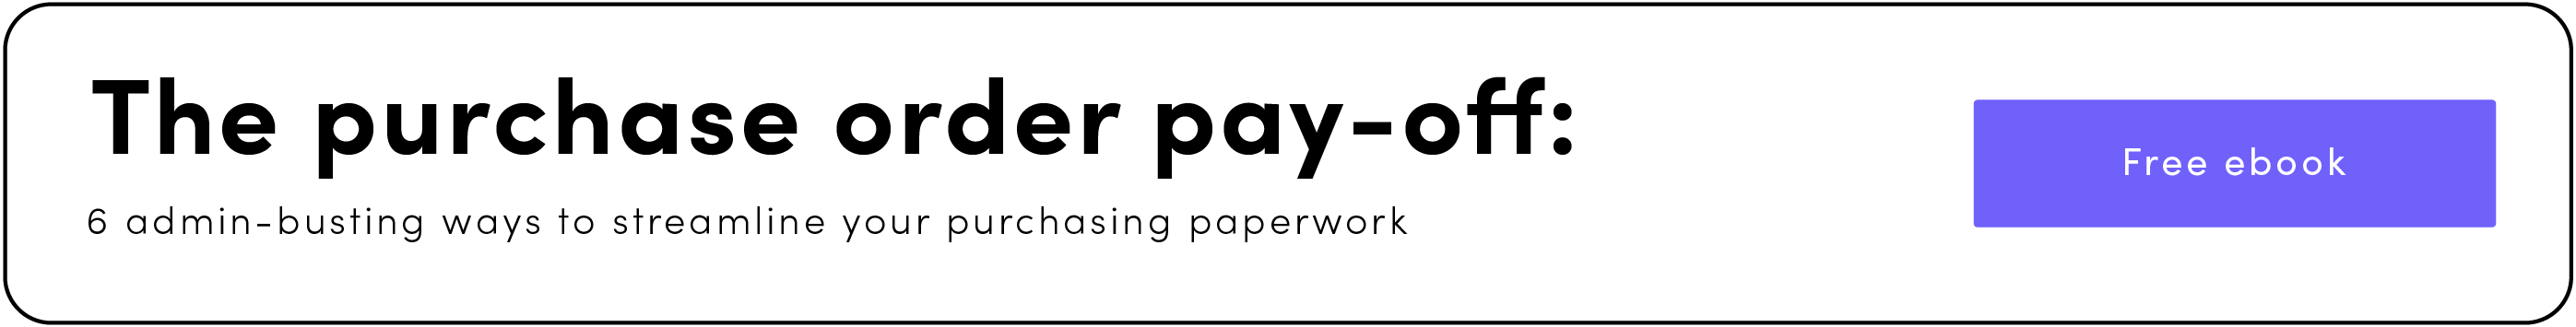 Download purchase order payoff ebook